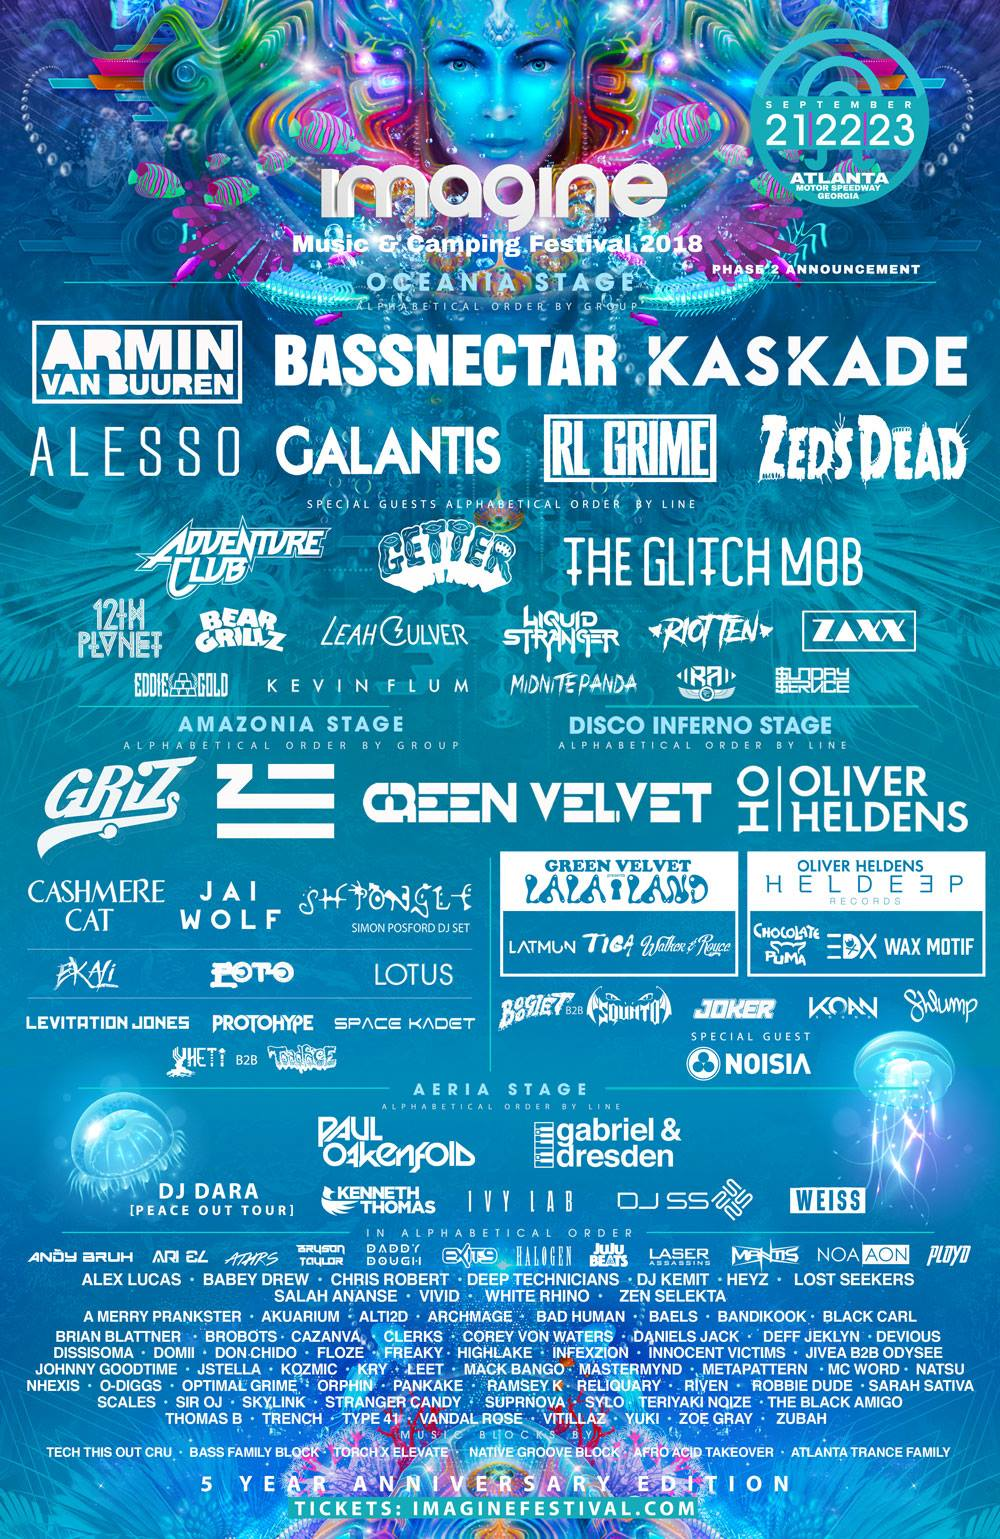 Imagine Music Fesival 2018 Lineup - Bassnectar And Kaskade Join Headliners Armin Van Buuren, Alesso, Galantis, Rl Grime And Zeds Dead For The 5th Anniversary Imagine Music Festival, September 21-23, 2018